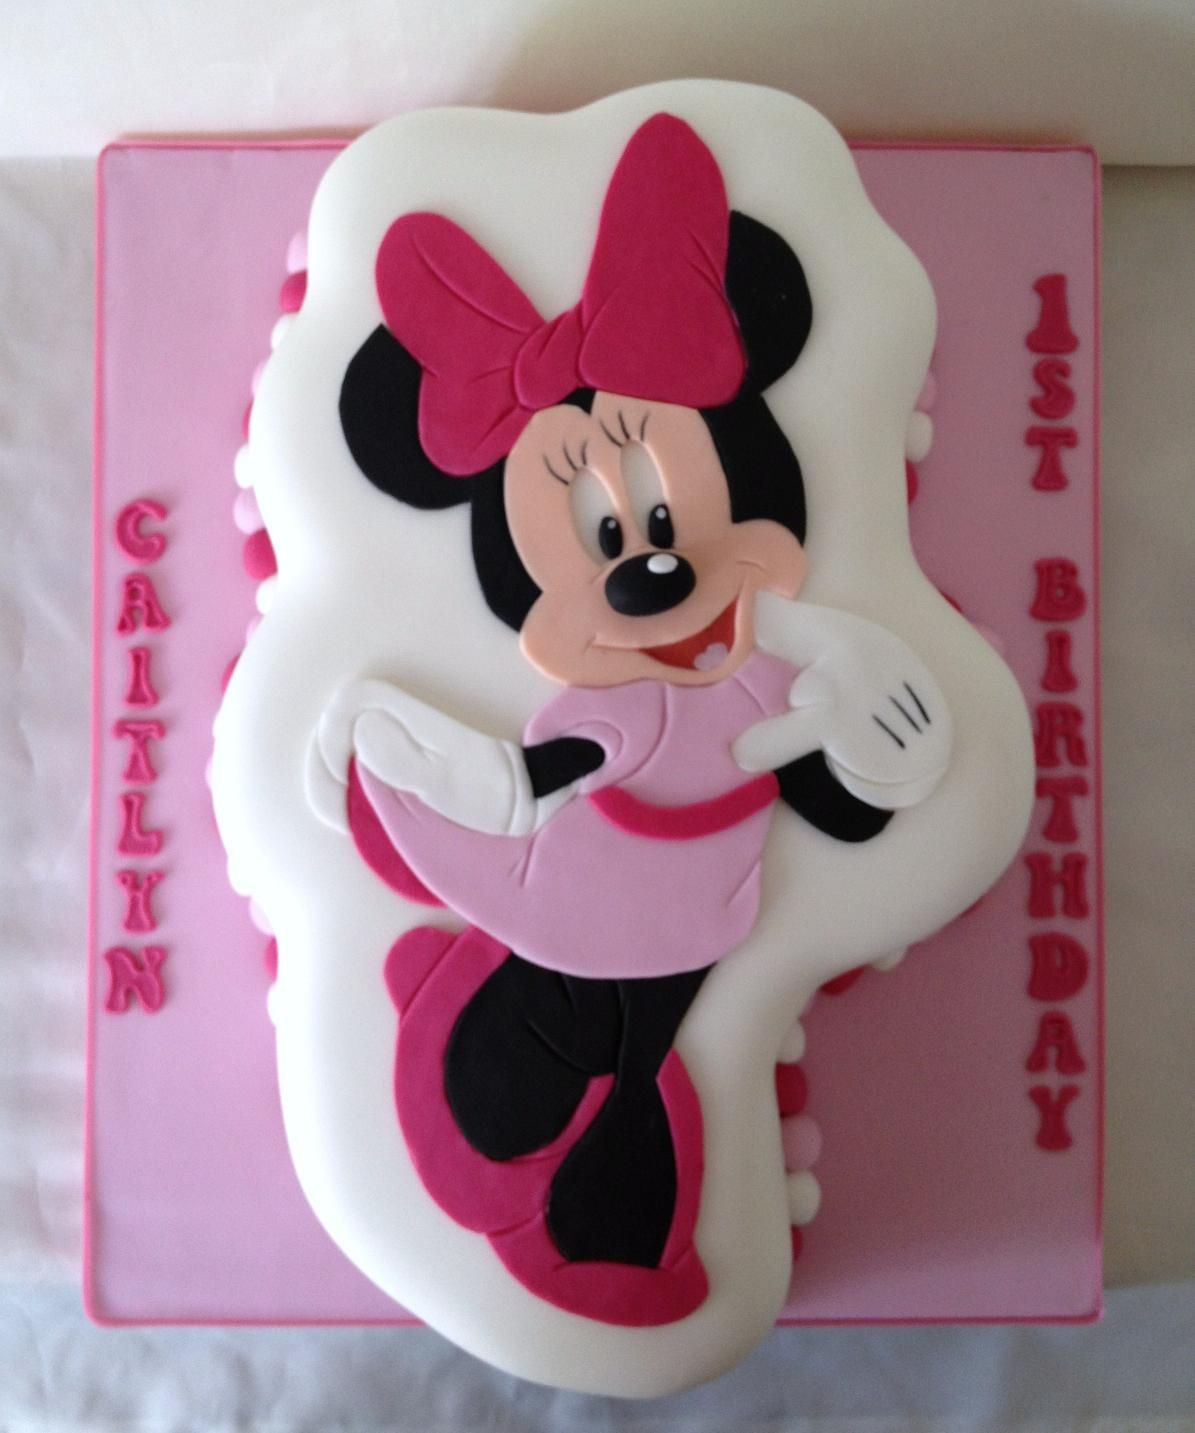 Minnie Maus Küche Minnie Maus Kuchen